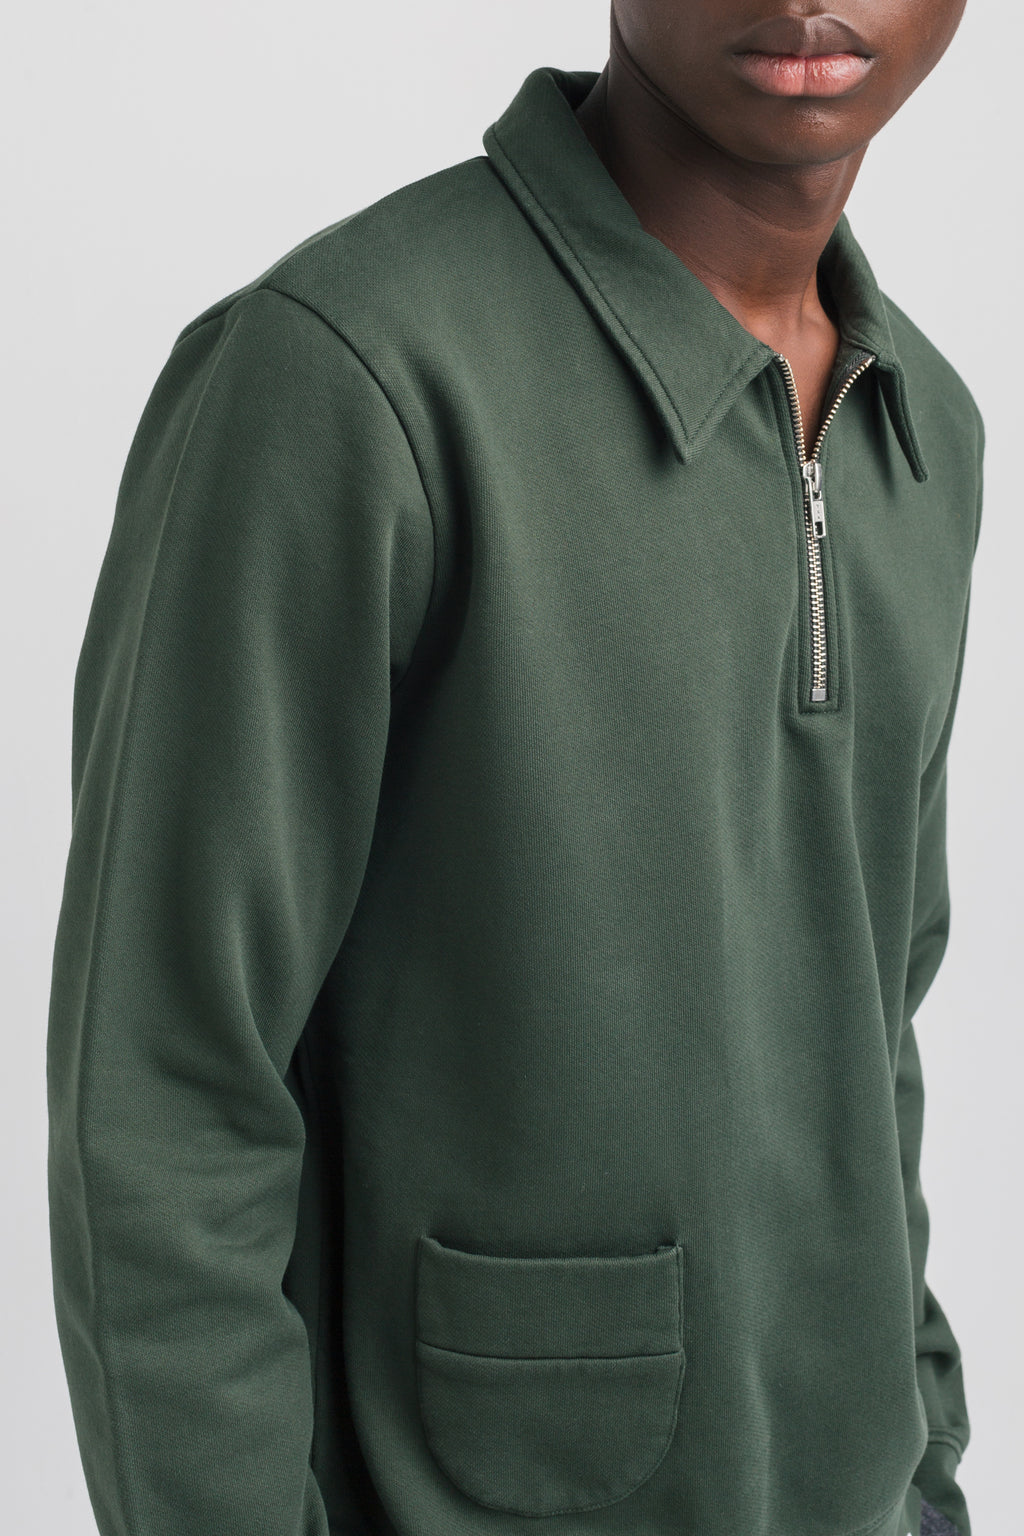 Edmmond actual zip plain green